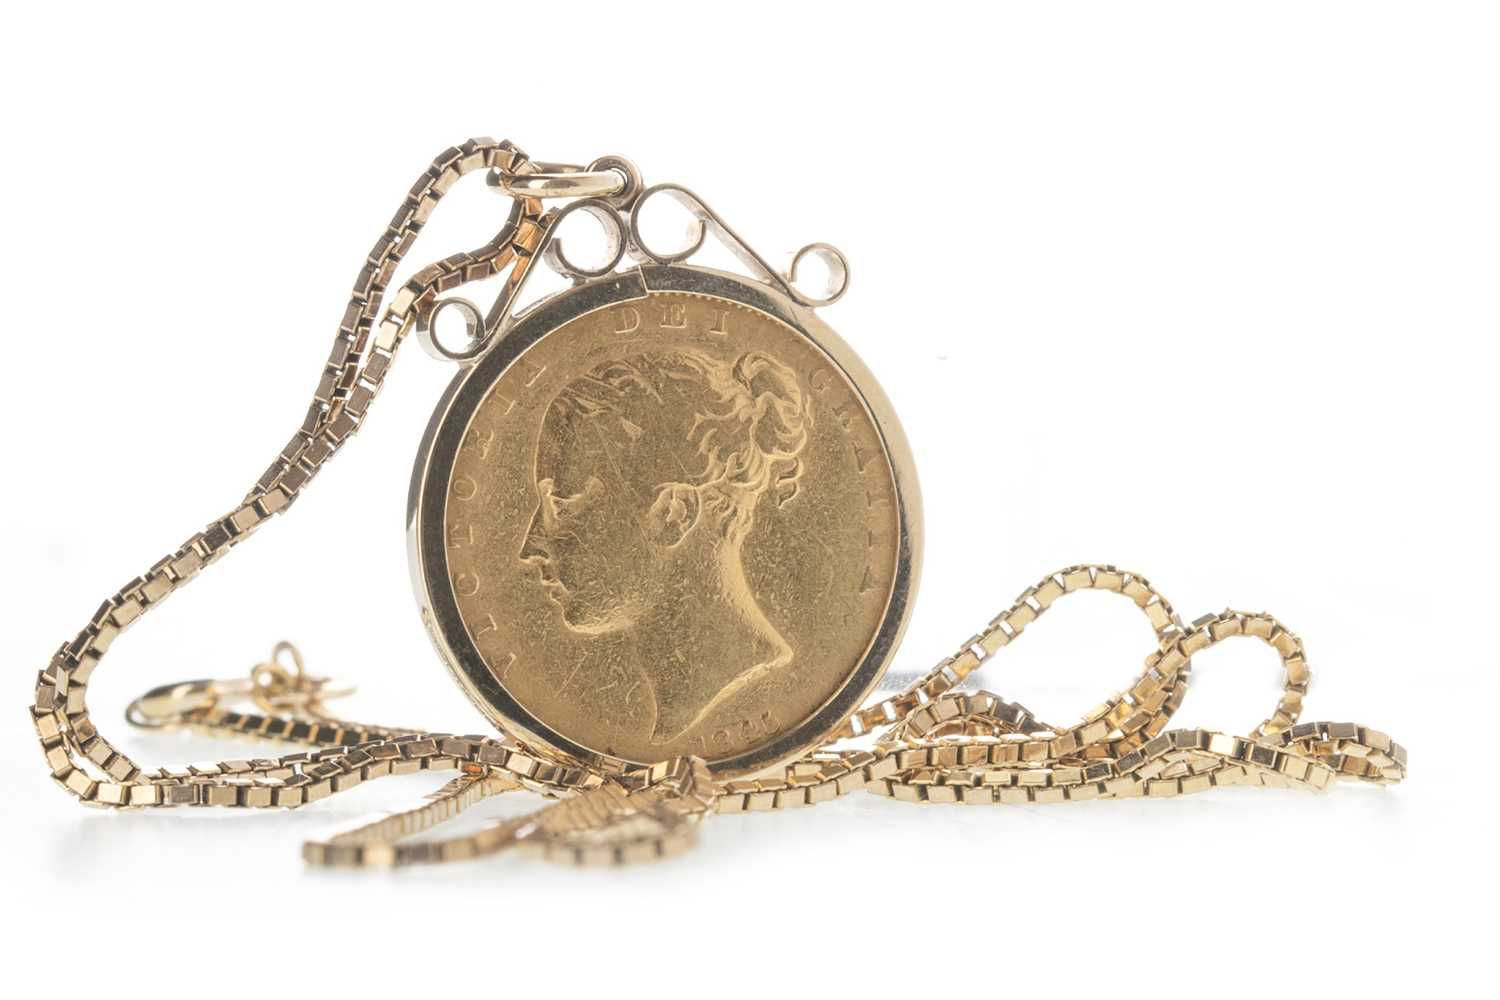 Lot 10-A QUEEN VICTORIA (1837 - 1901) GOLD SOVEREIGN DATED 1845 ON A CHAIN